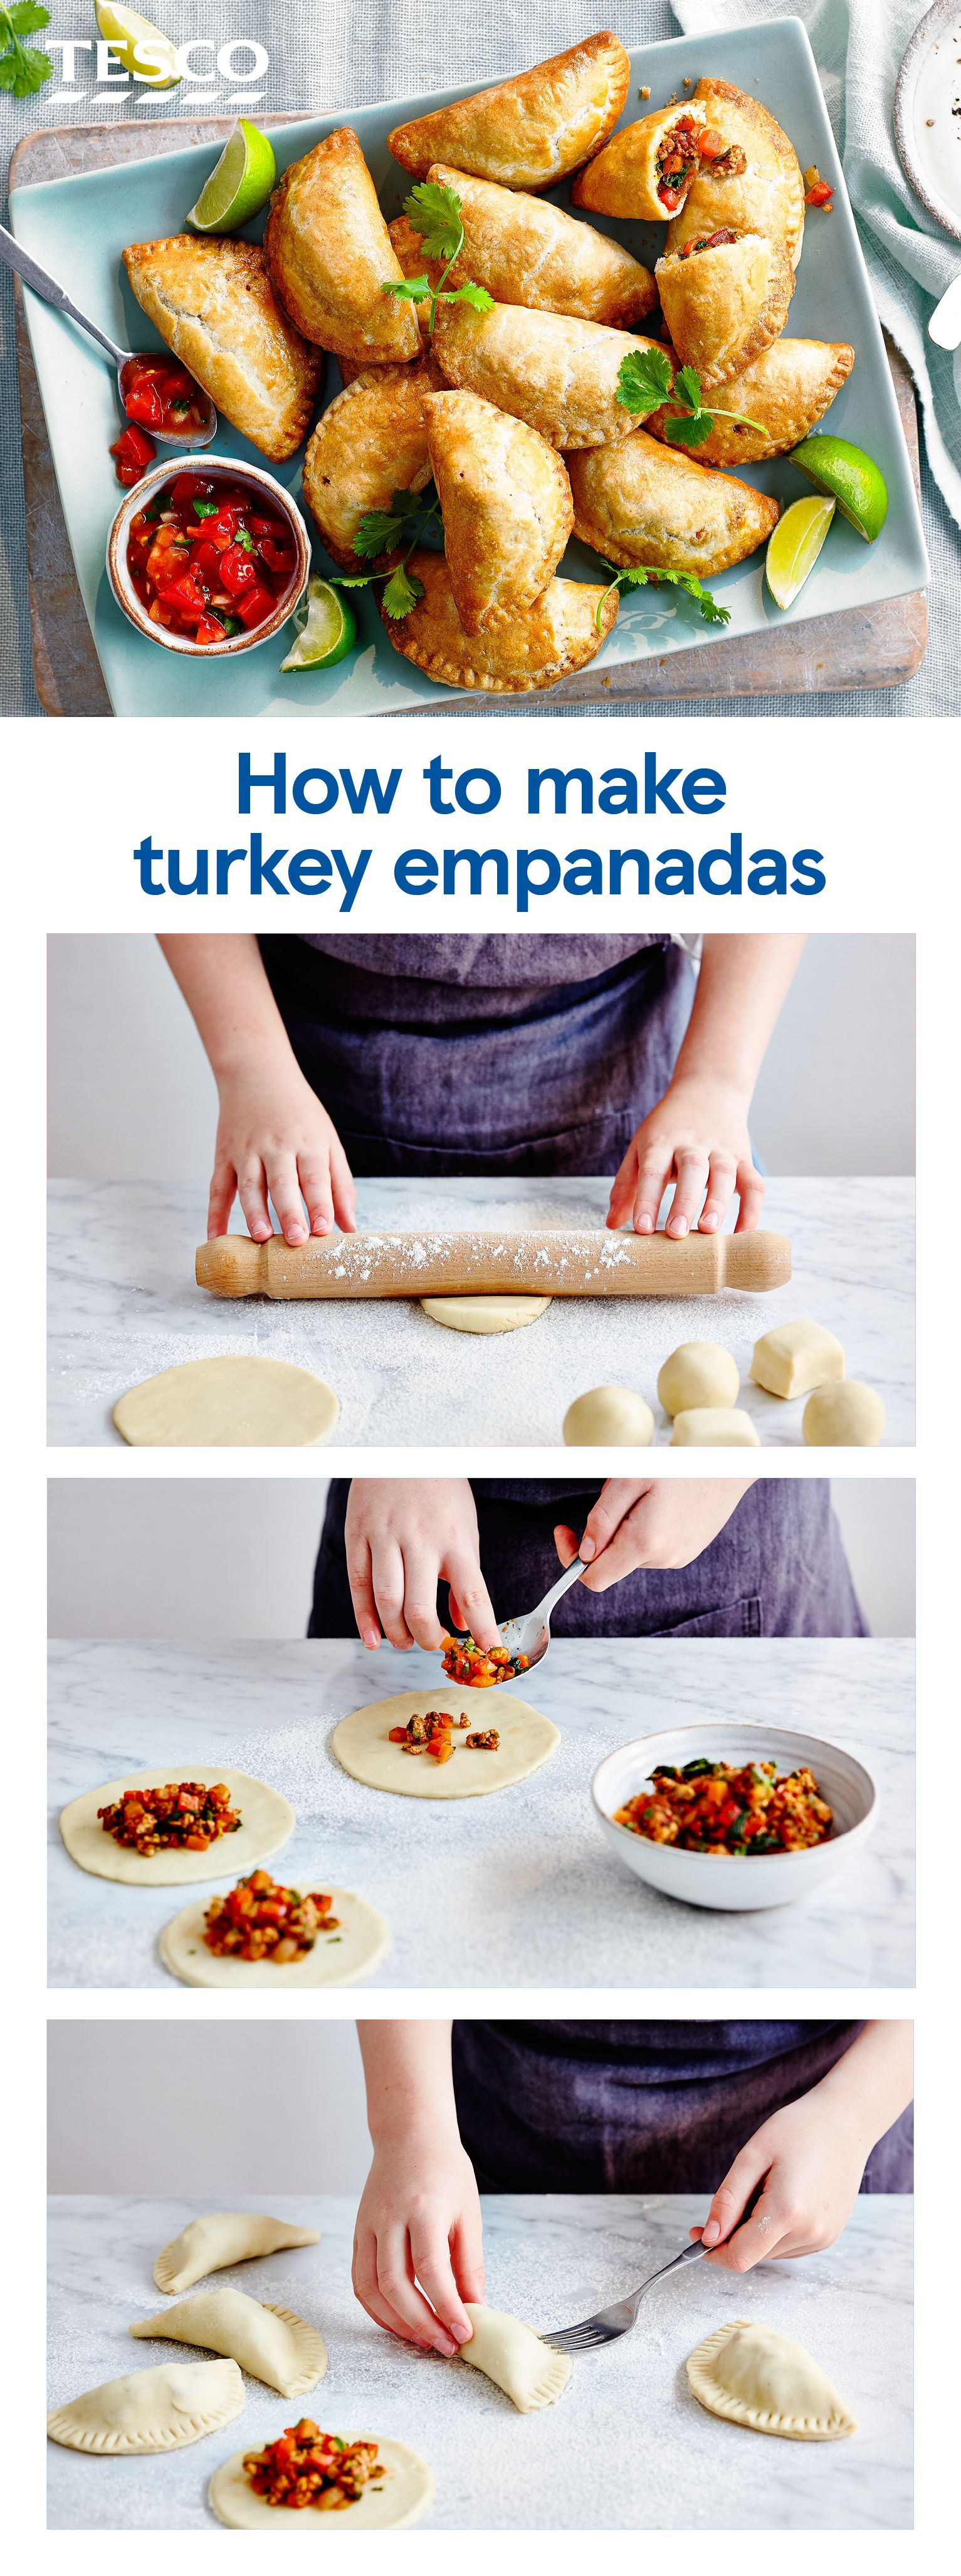 How to make turkey empanadas (With images)   Mince recipes ...